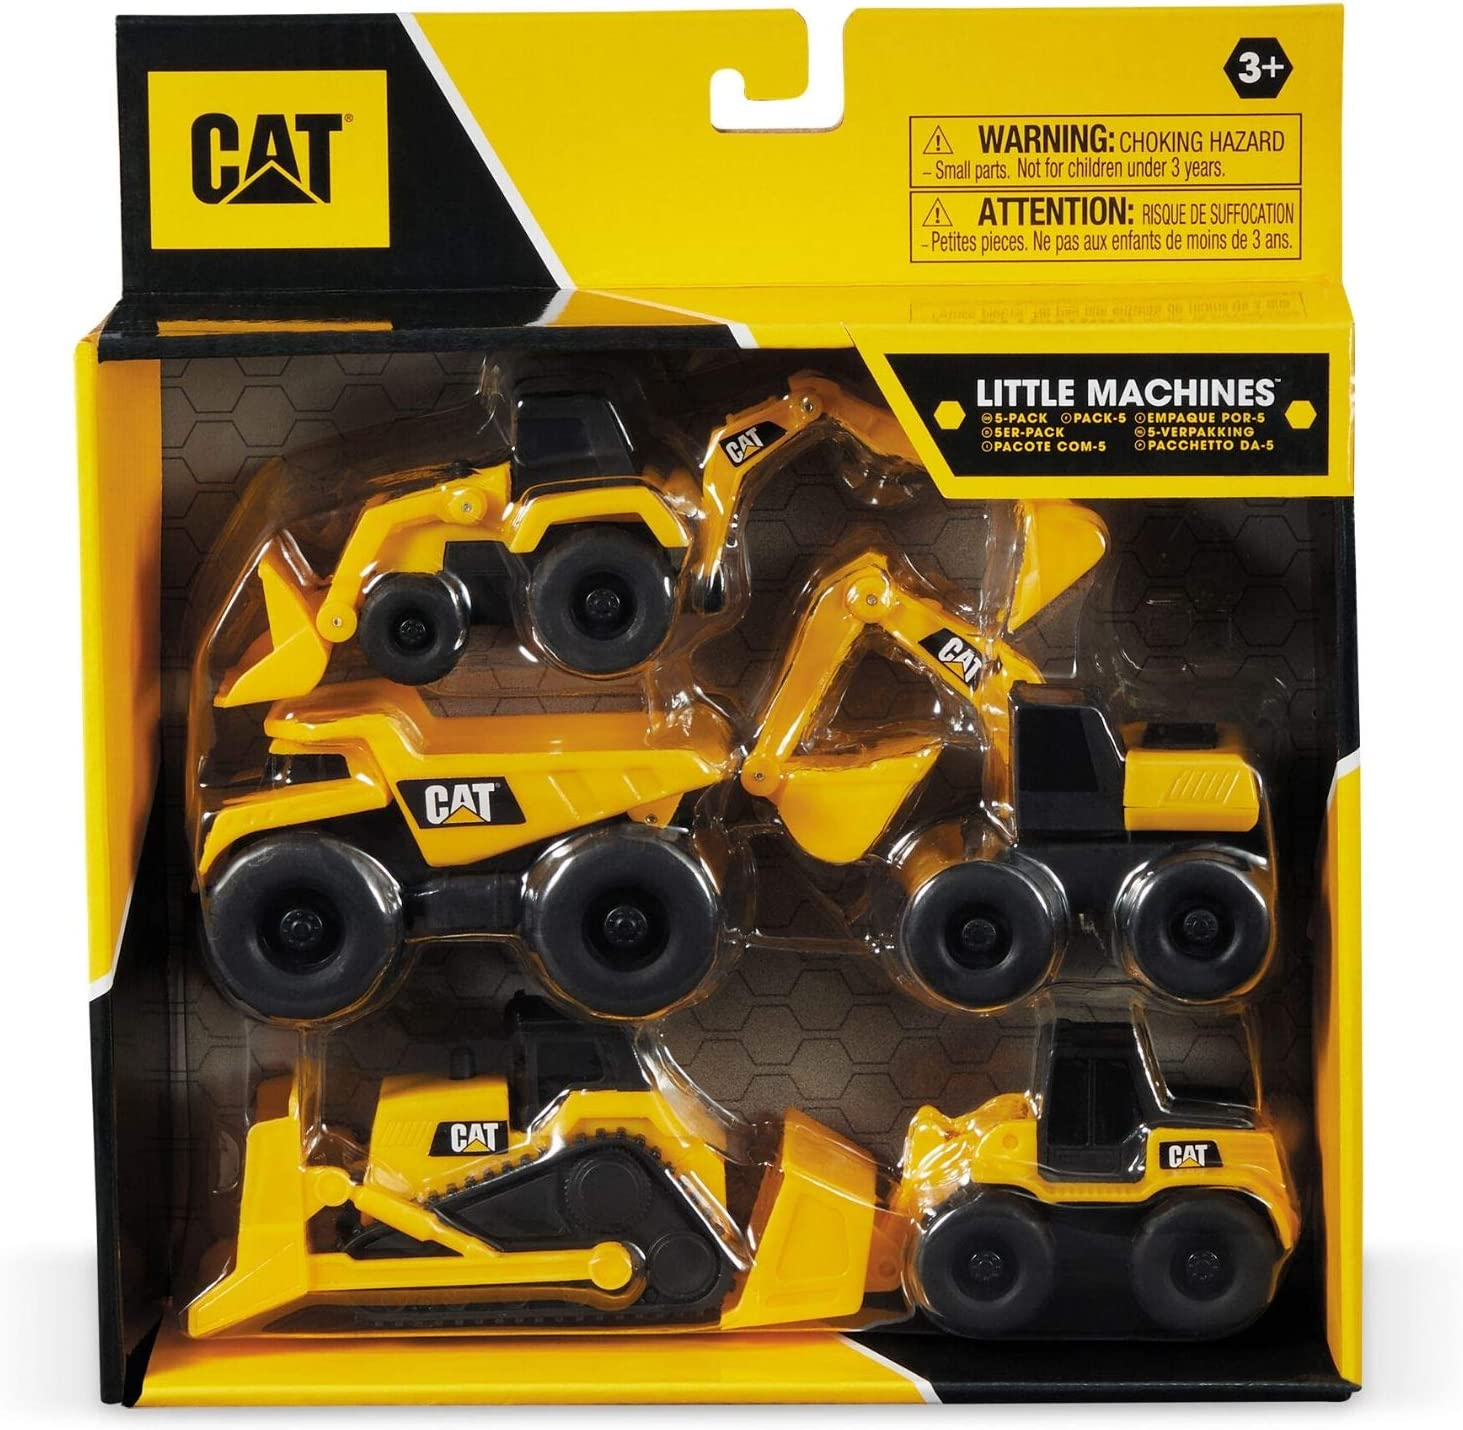 Mondo Motors-Caterpillar CAT Little Machines - Lote de 5 vehículos de construcción, color amarillo/negro, 25511, varios , color/modelo surtido